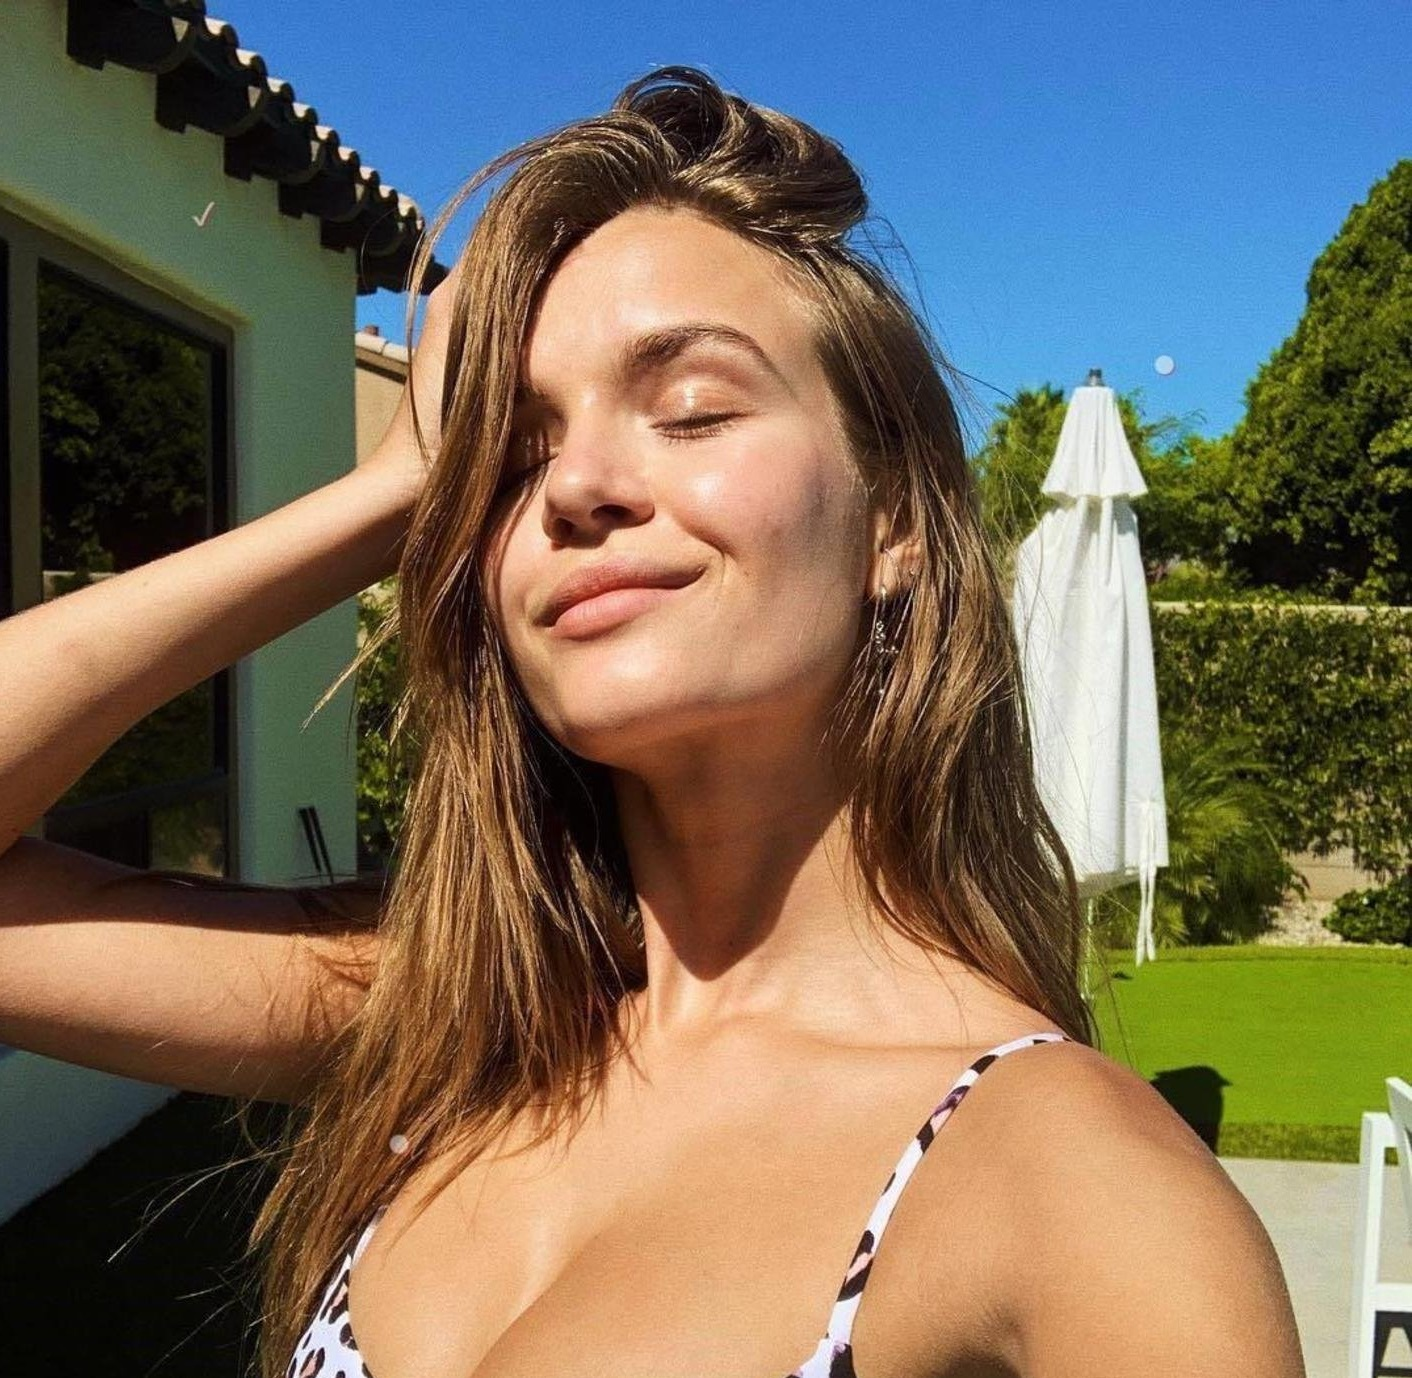 "Josephine Skriver (josephineskriver / 19.04.2019): Who is your favorite artist playing at Coachella?? Would love recommendations on who to watch!! """", Image: 427587408, License: Rights-managed, Restrictions: , Model Release: no, Credit line: Profimedia, Face To Face A"